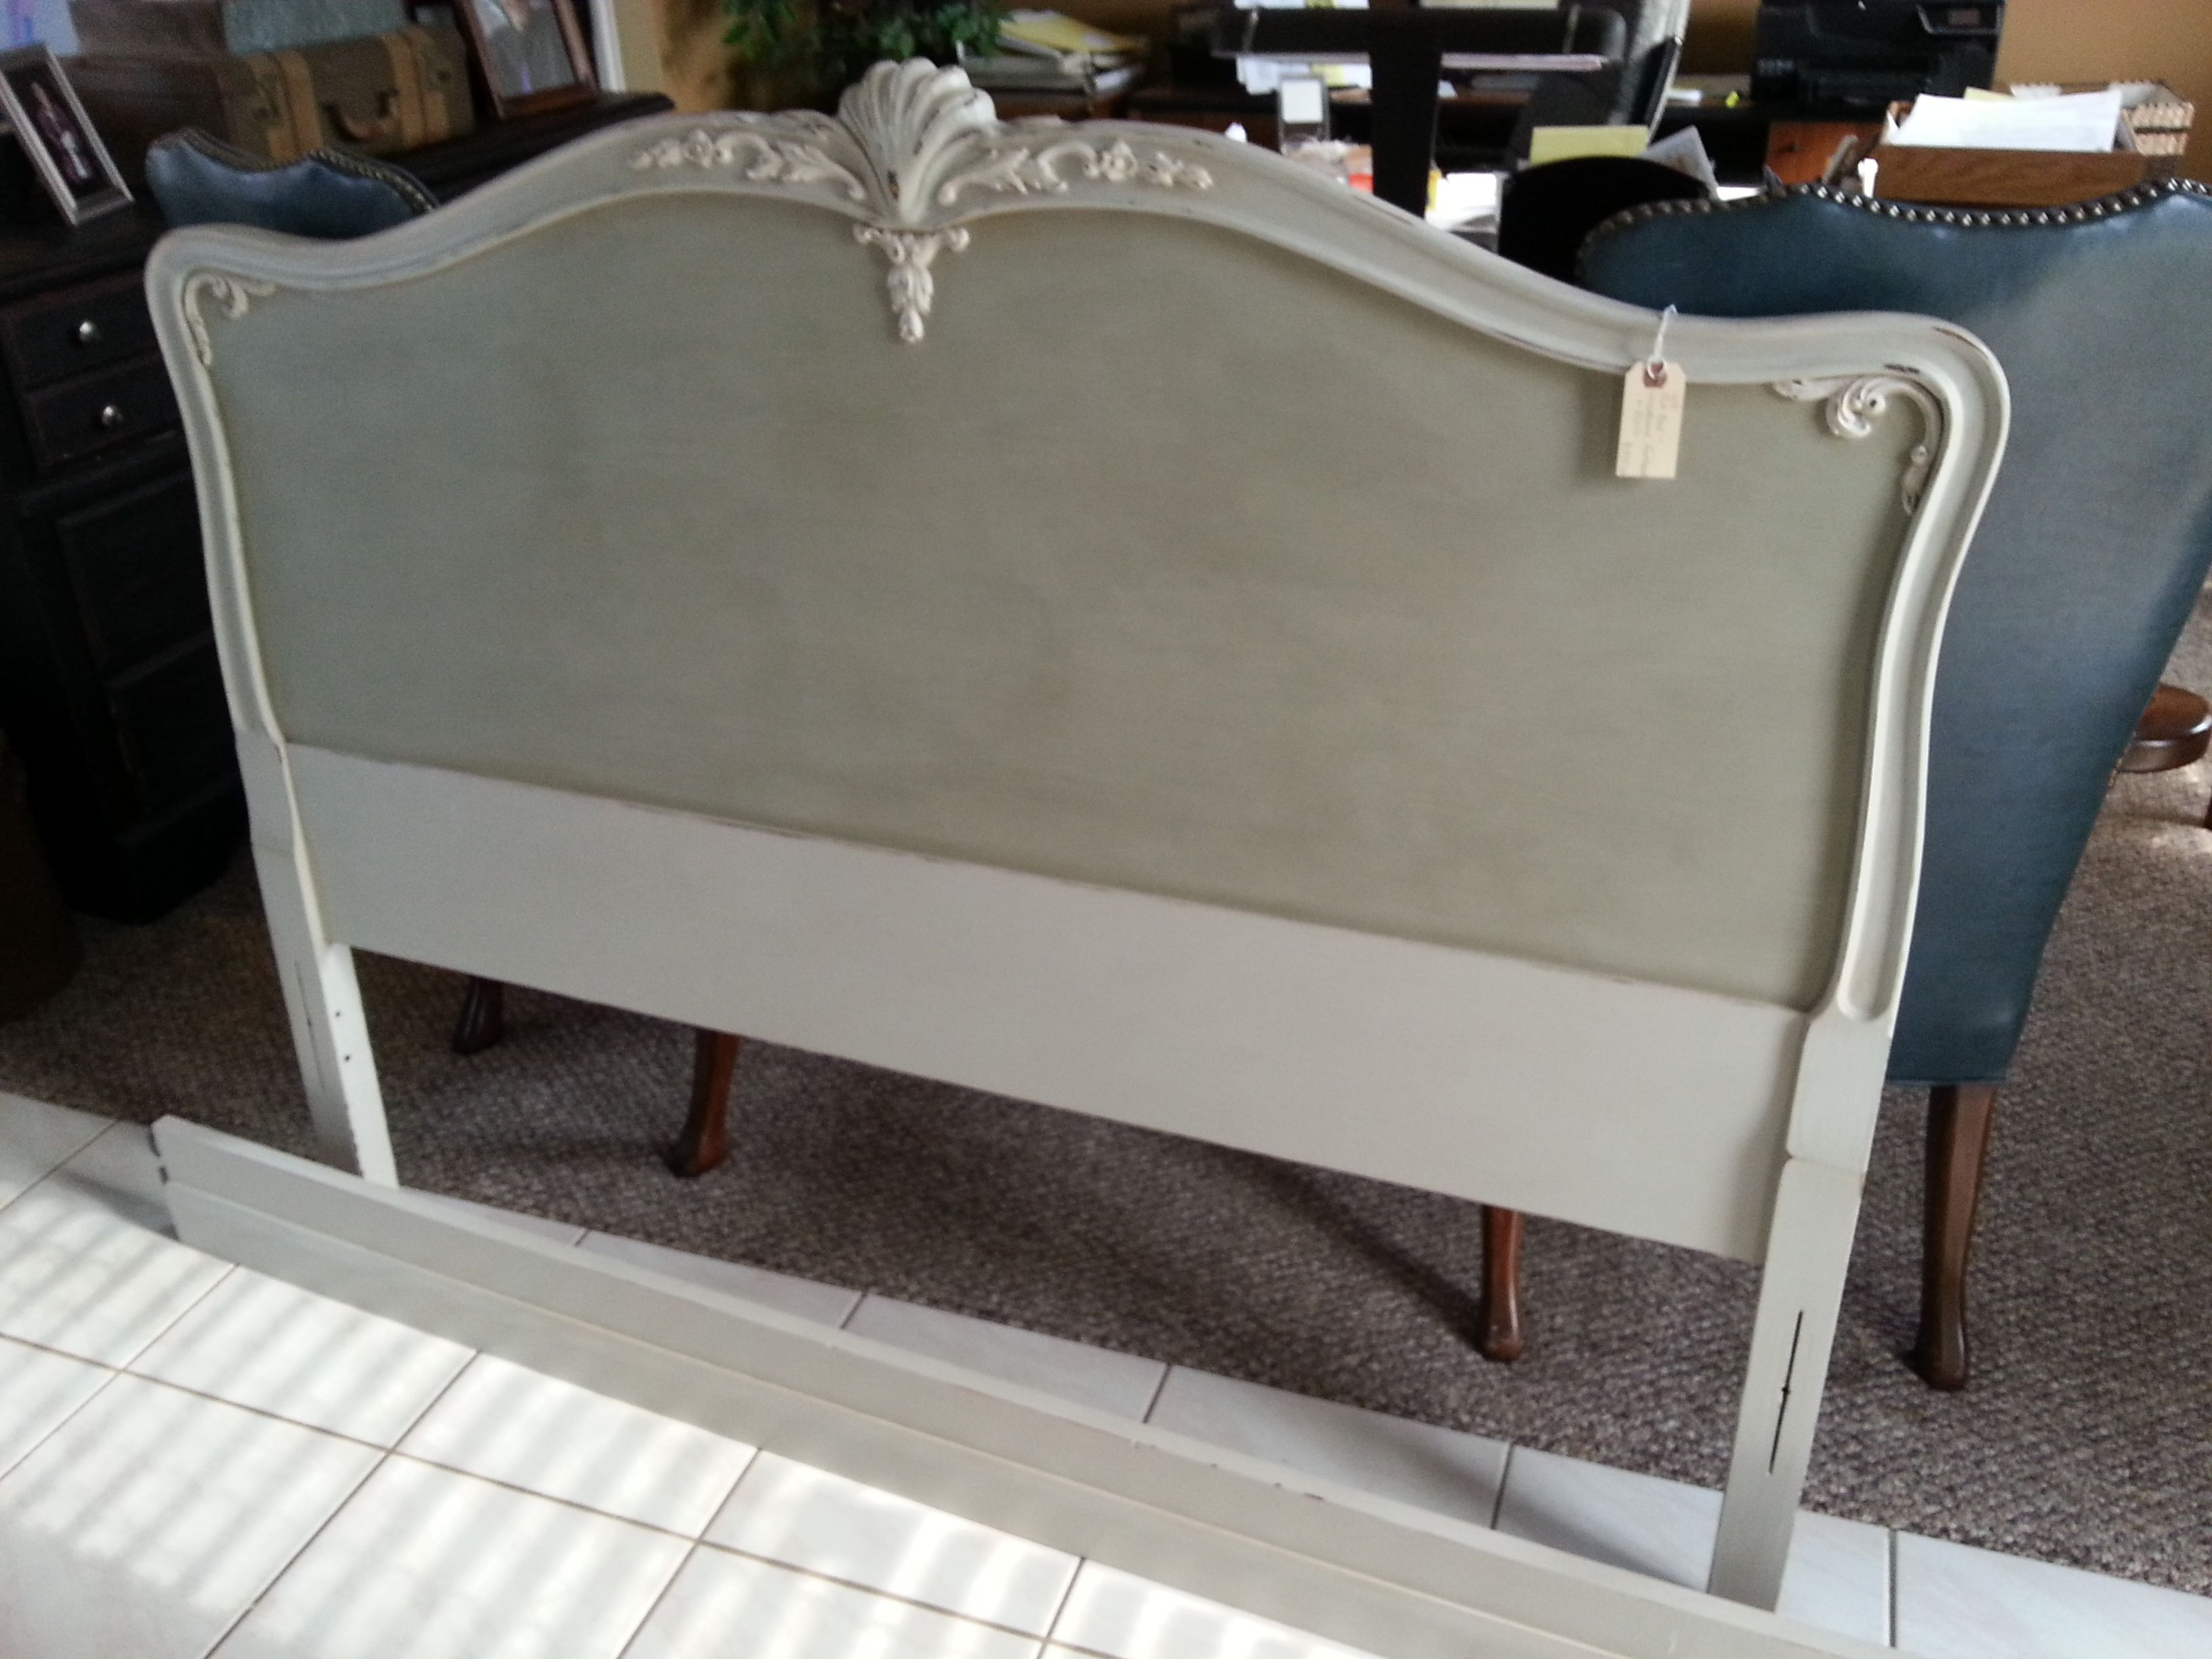 Headboard Of Full Bed Painted With Amy Howard Paint In